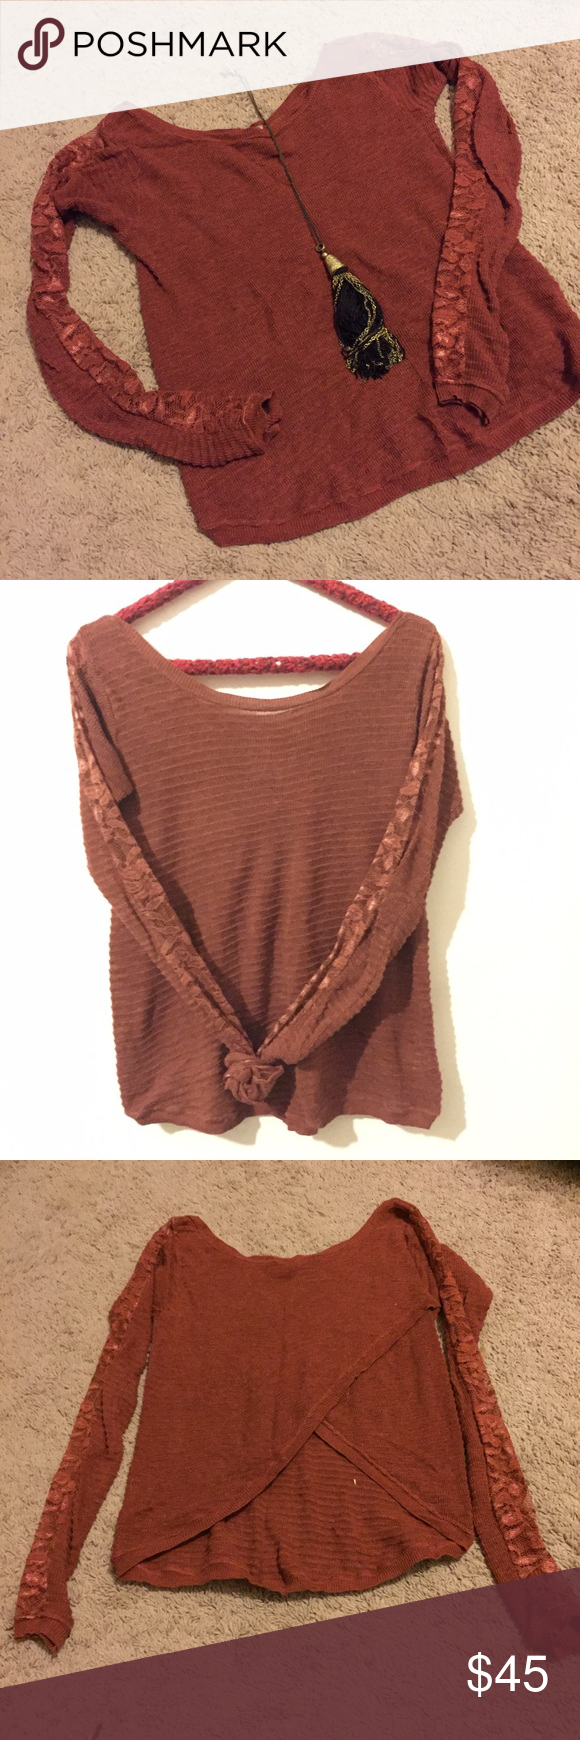 "Free People Lace Sleeve Sweater Tulip Back Large Free People Lace Sleeve Sweater--texture on texture! This is a lightweight sweater in a beautiful burnt orange--a great color for fall. The neckline is a scoop neck with a bit of boat neck thrown in. The back is a Tulip Back, it is shorter in the back and a bit open---measures 12"" from neckline to where the layers meet in the back. It is longer in the front---length Measures 20"". Size Large, runs a tad small, fit is fitted on a large but is a…"